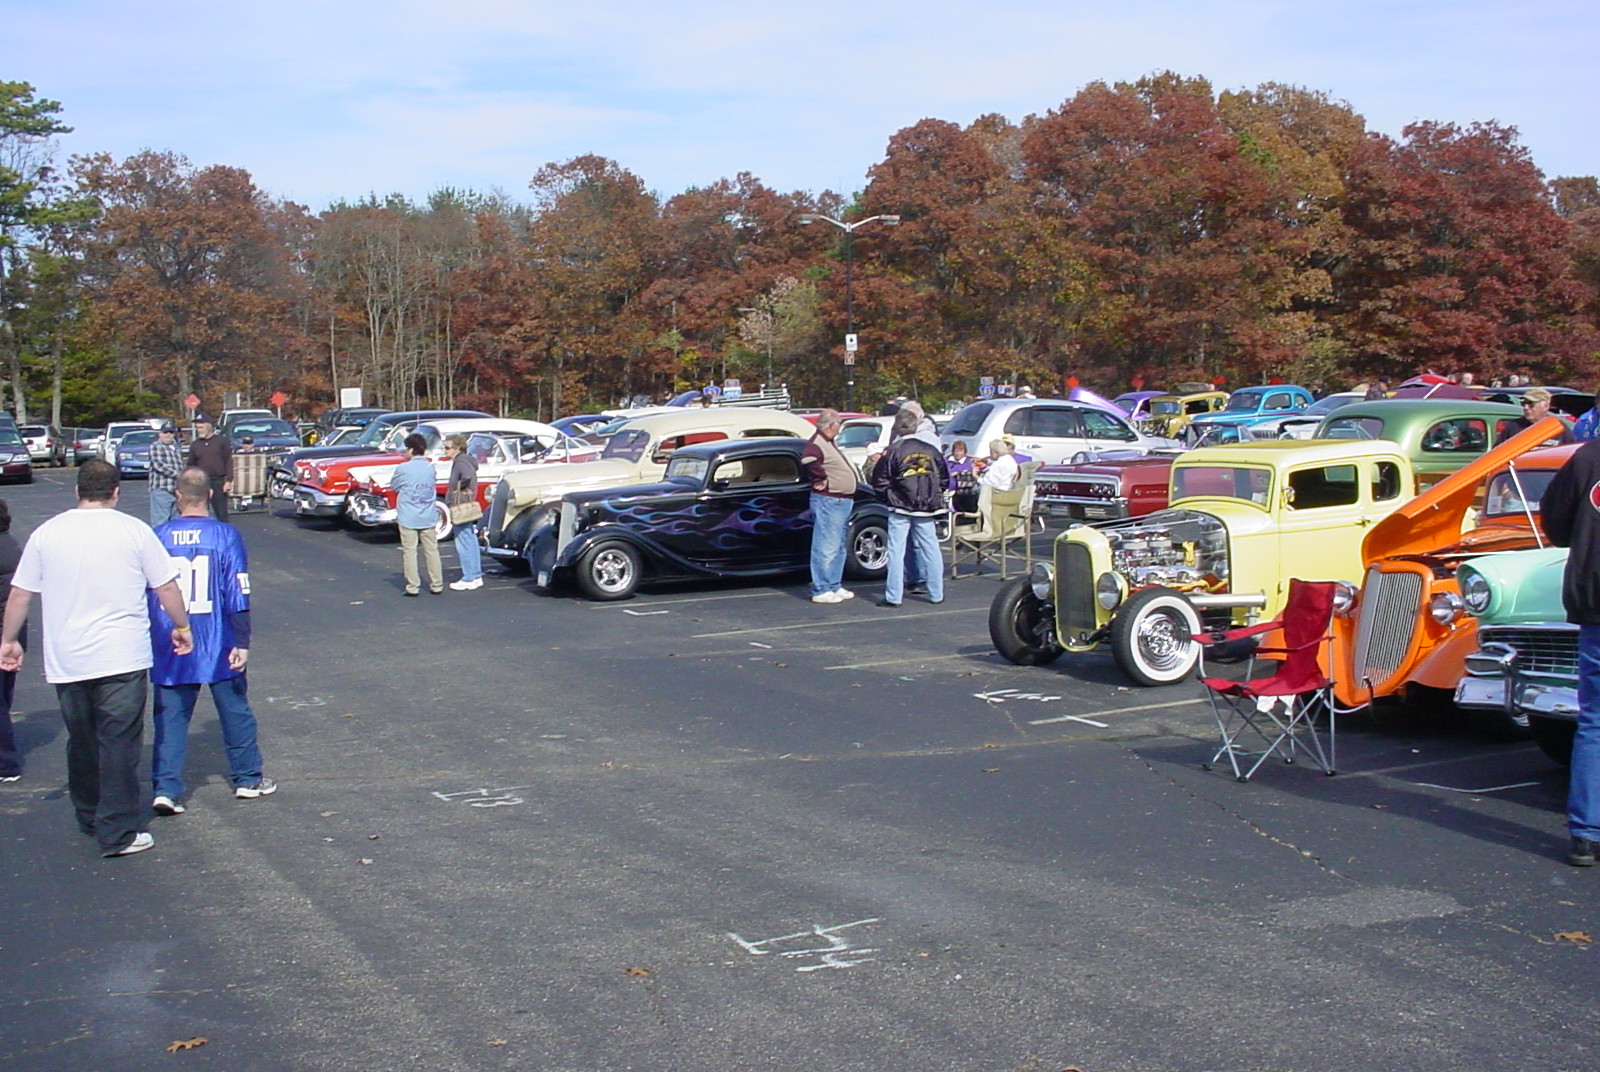 Street Rods along with stock vehicles at the show